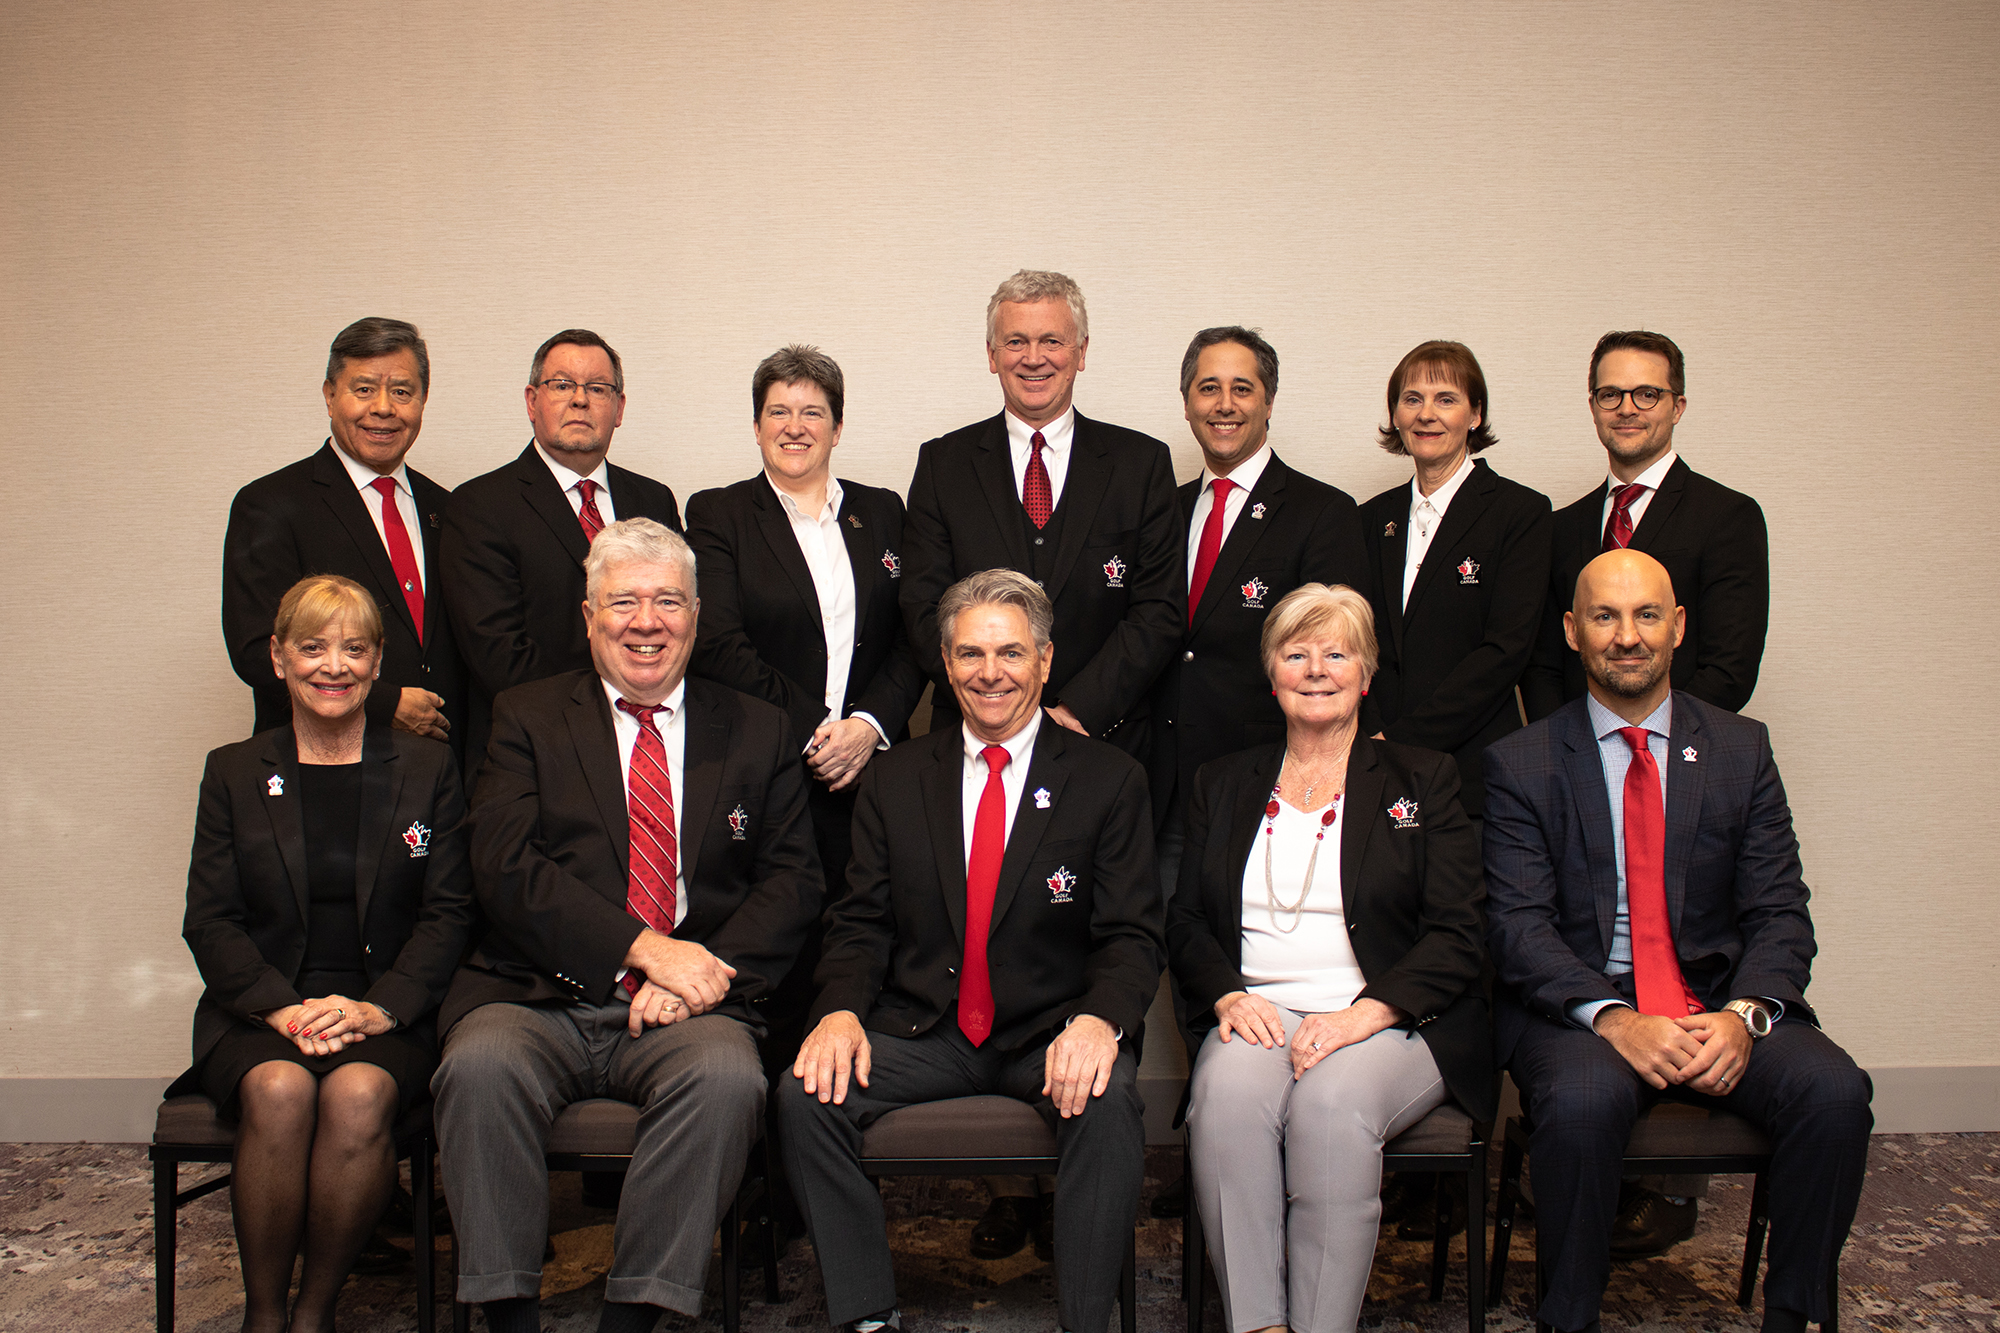 2020 Golf Canada Board of Directors